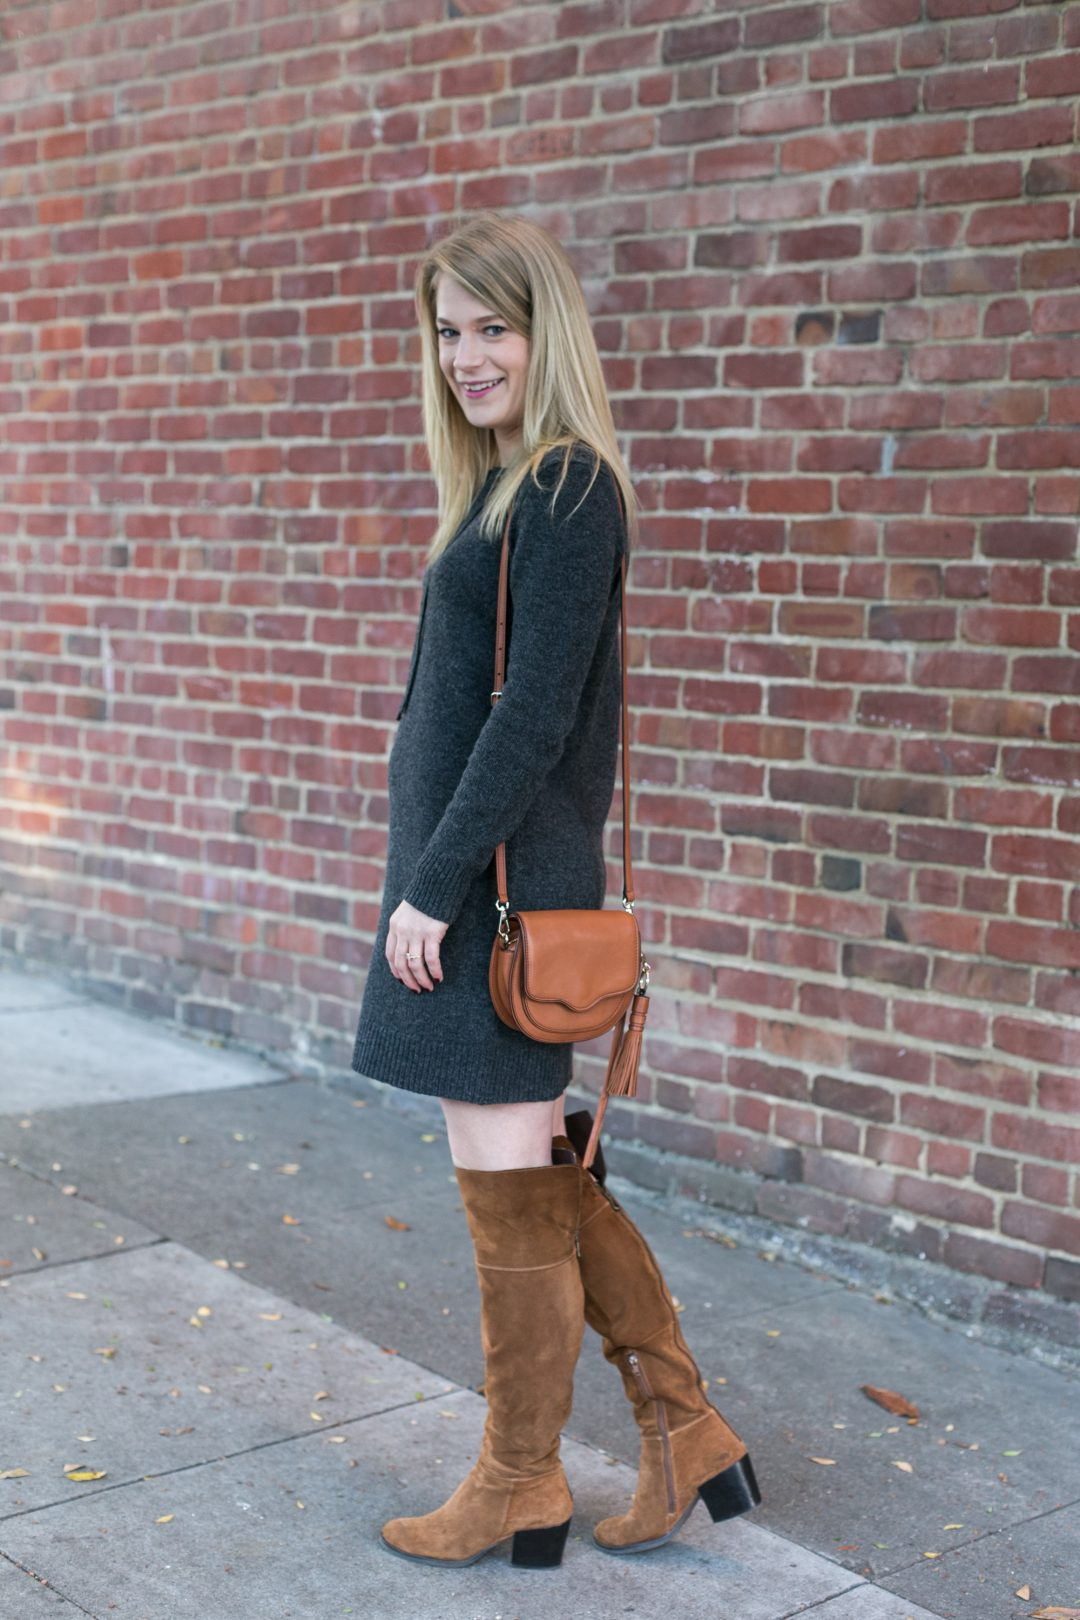 A sweater dress with over the knee boots is the perfect combination for fall